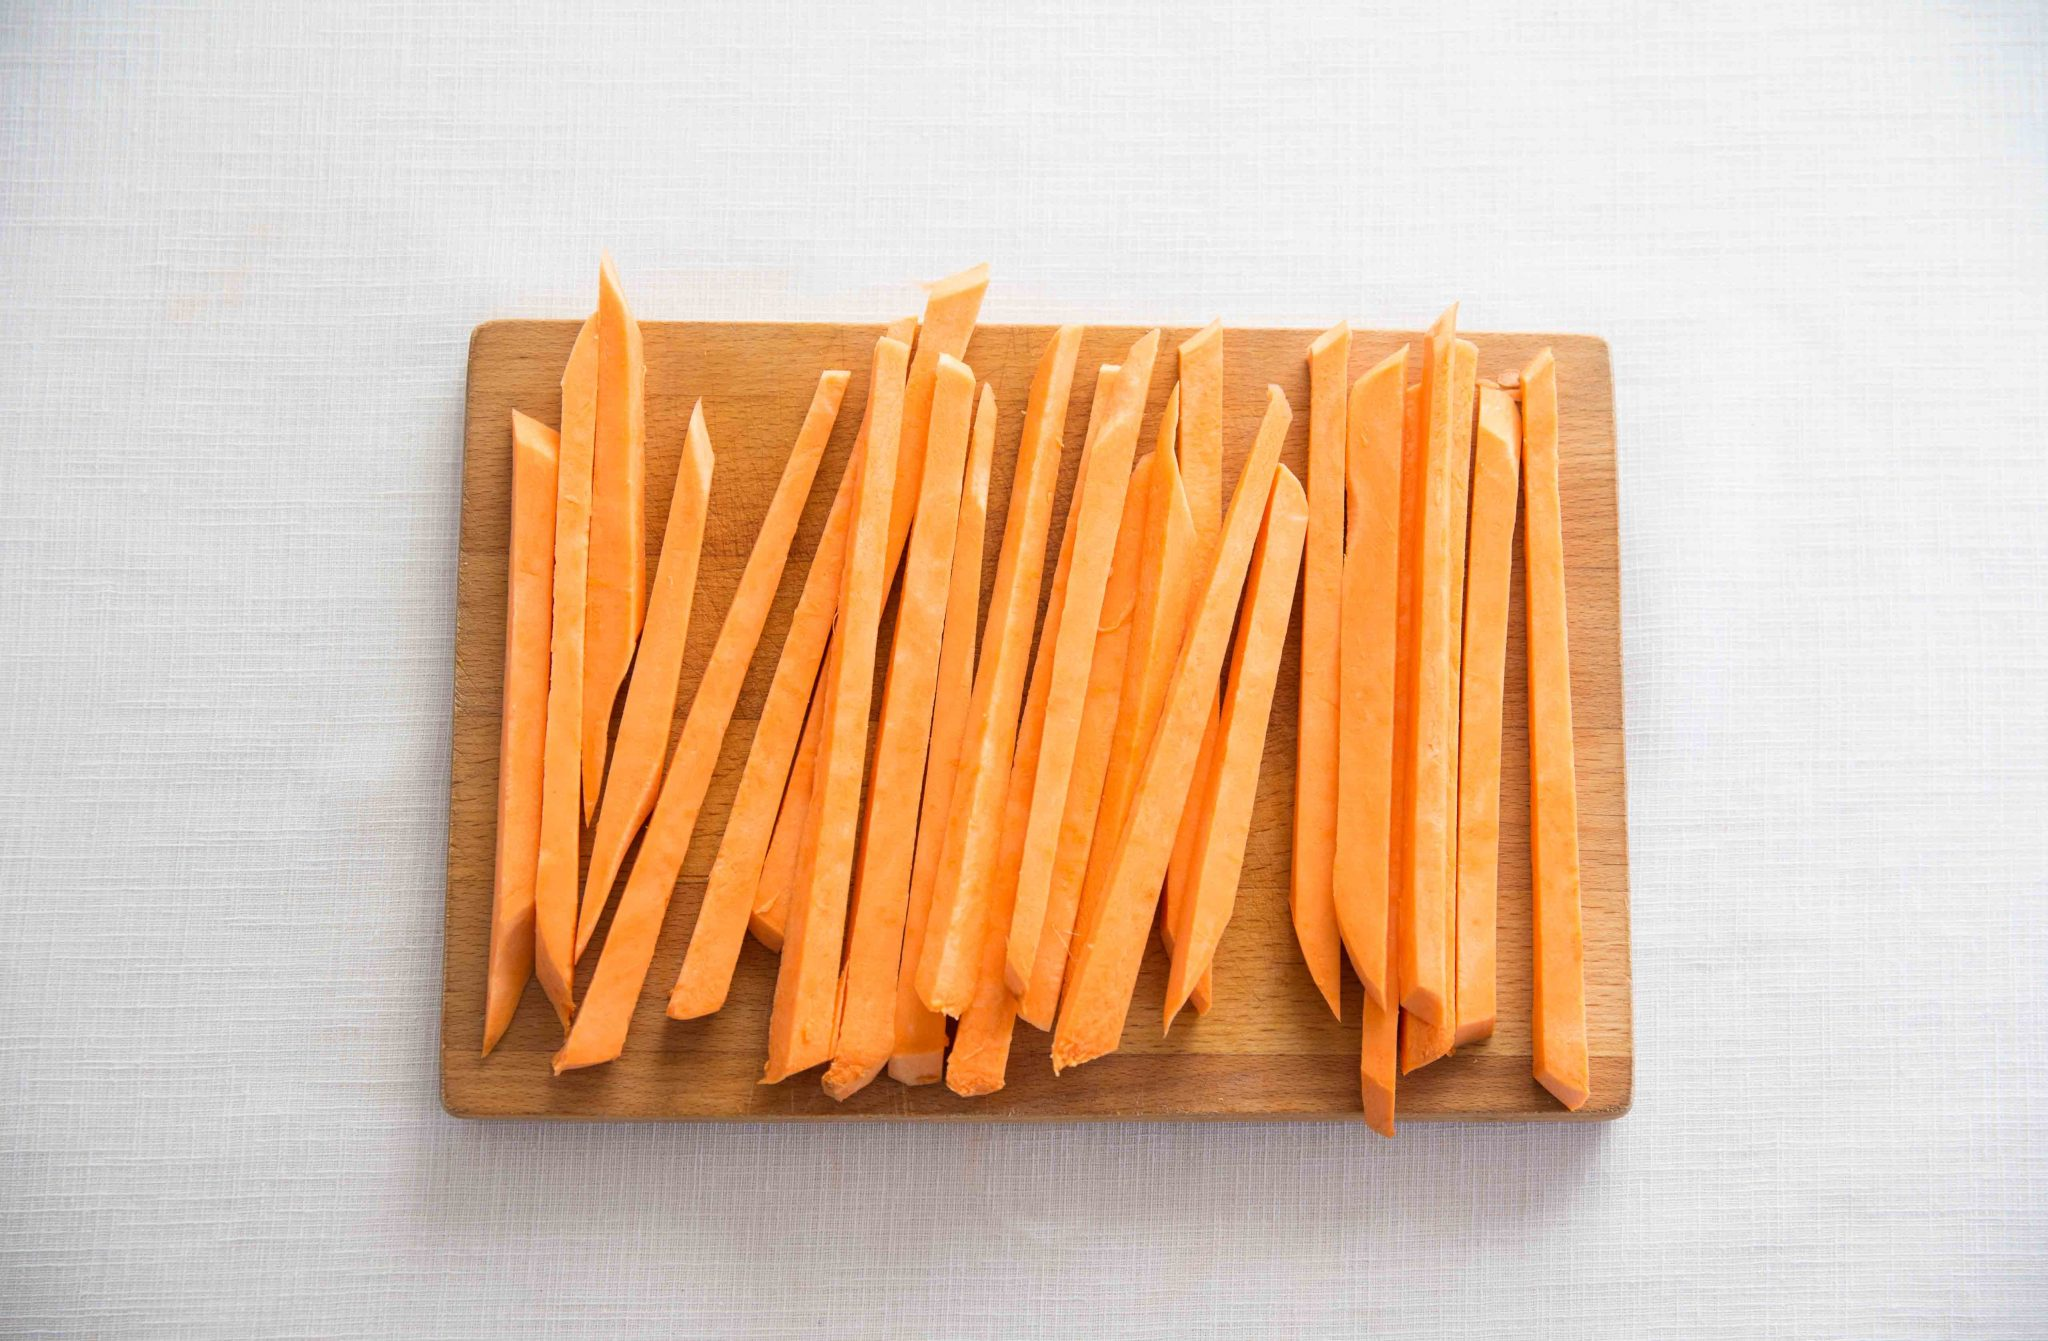 how to cook sweet potato fries in oven uk